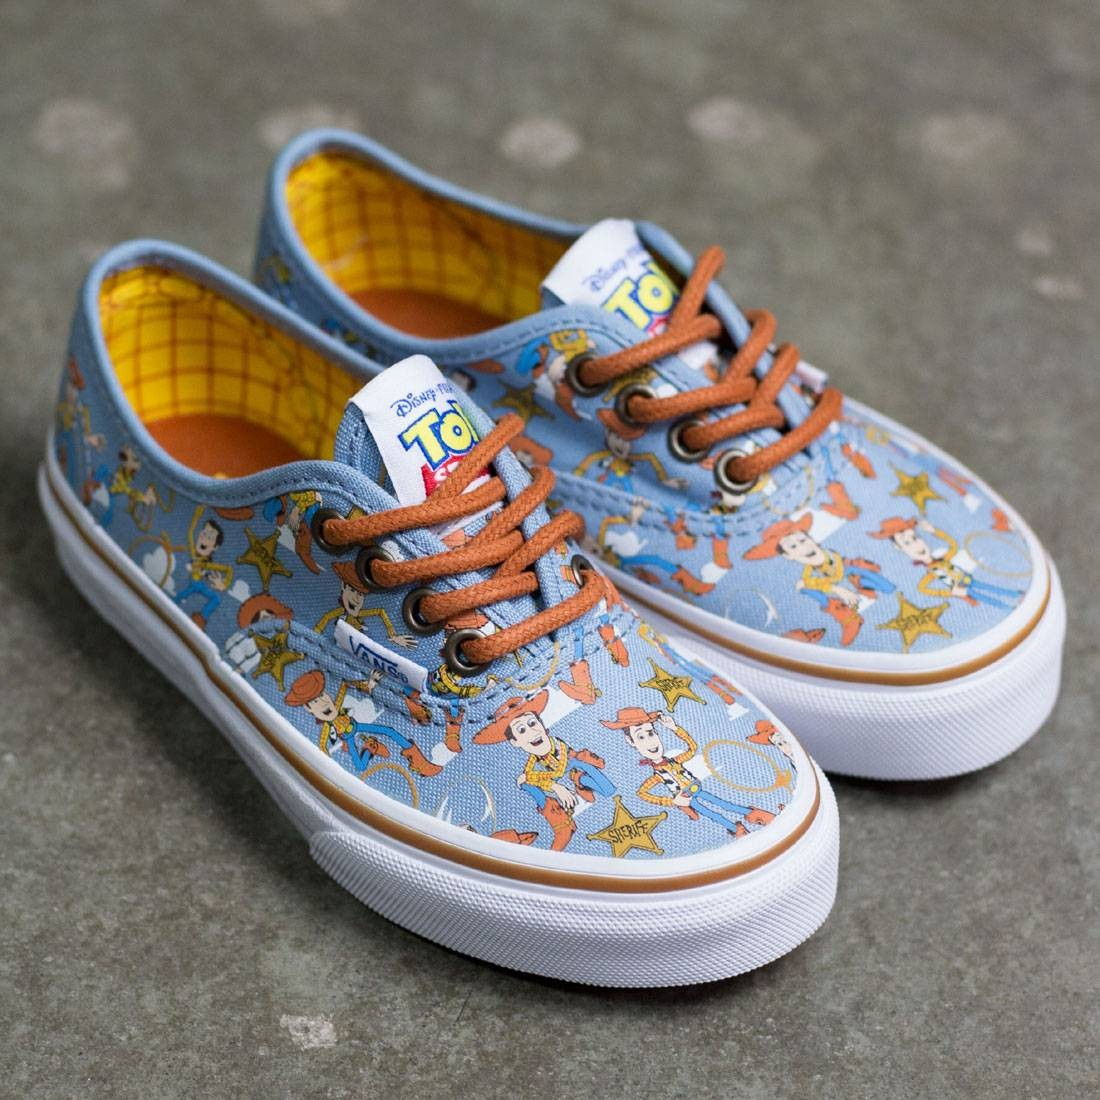 3f6a576a7bb8f3 Vans x Disney Pixar Toy Story Little Kids Authentic - Woody (brown   white)